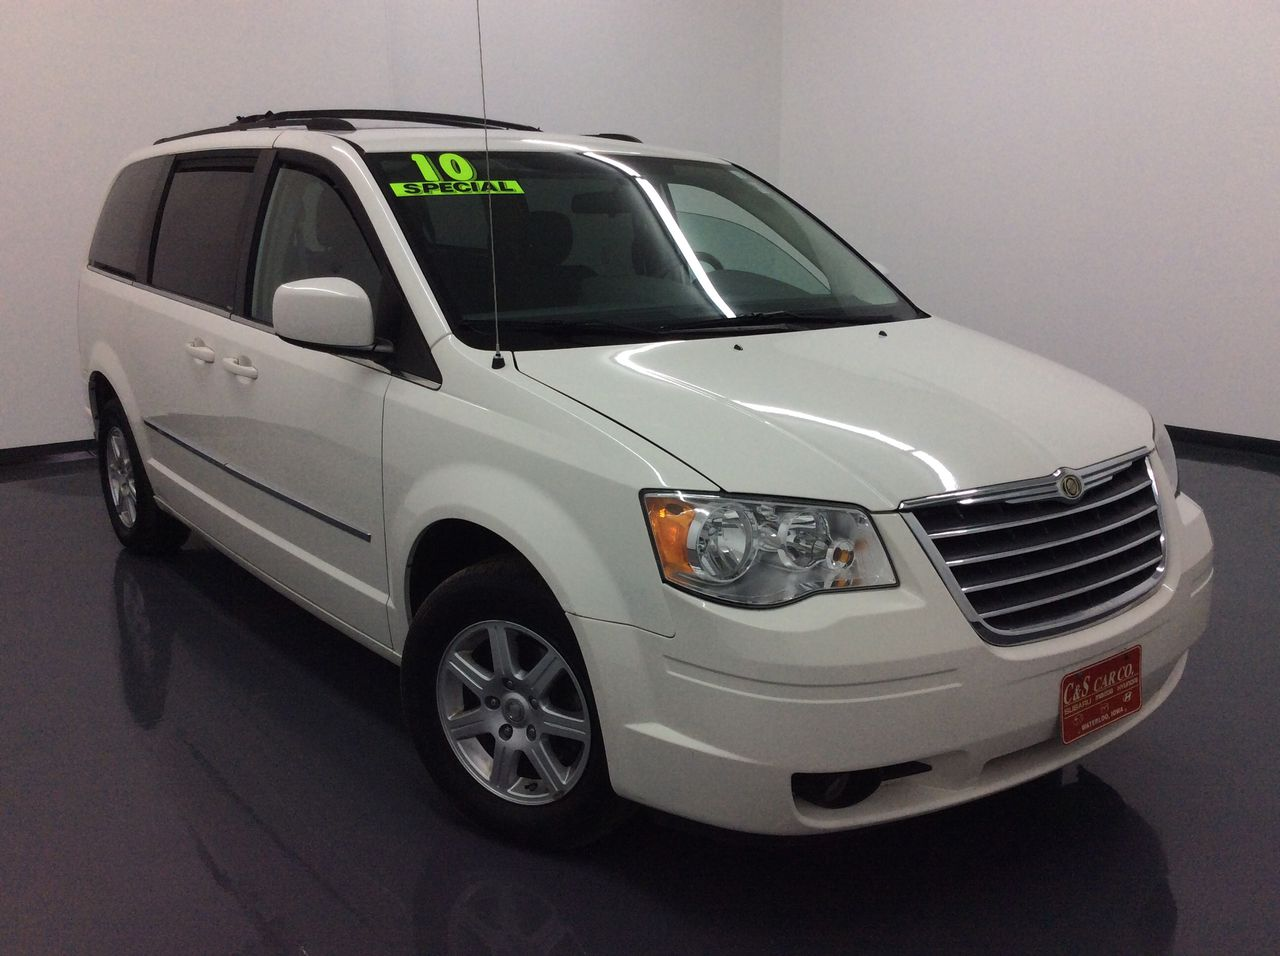 2010 Chrysler Town & Country  - C & S Car Company